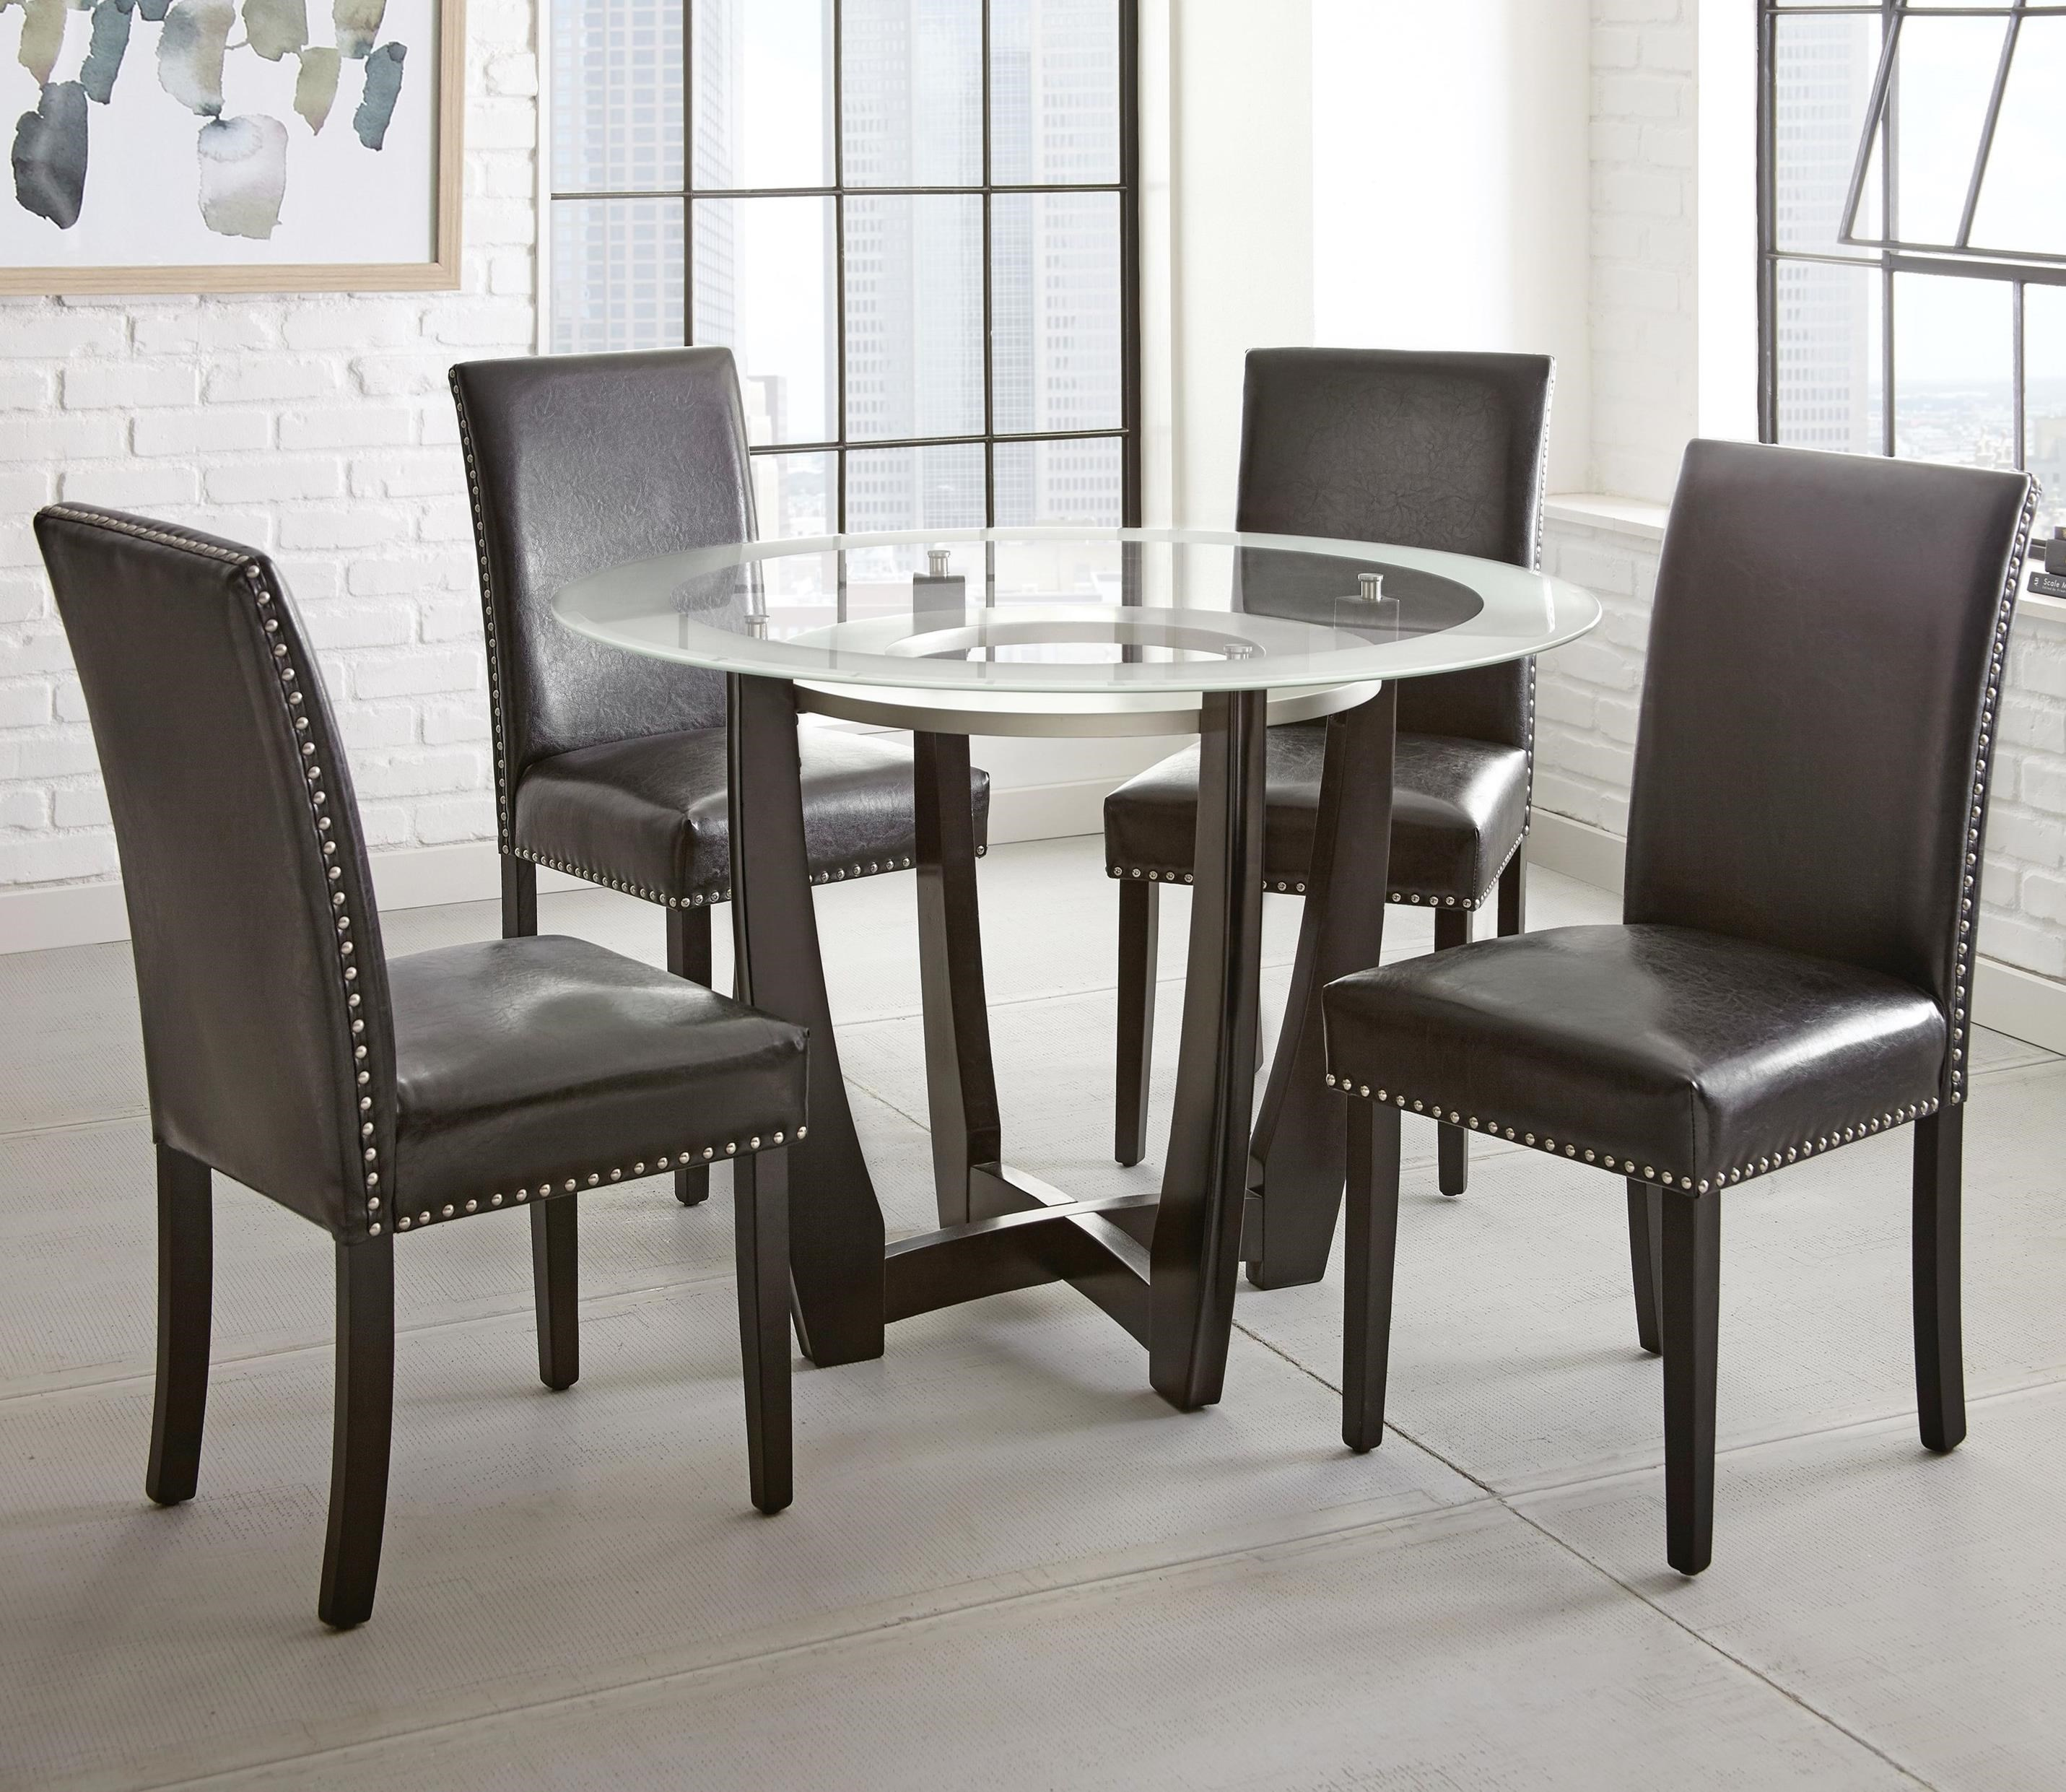 circle glass table and chairs swivel chair meaning in hindi star verano 5pc contemporary 45 round top dining set